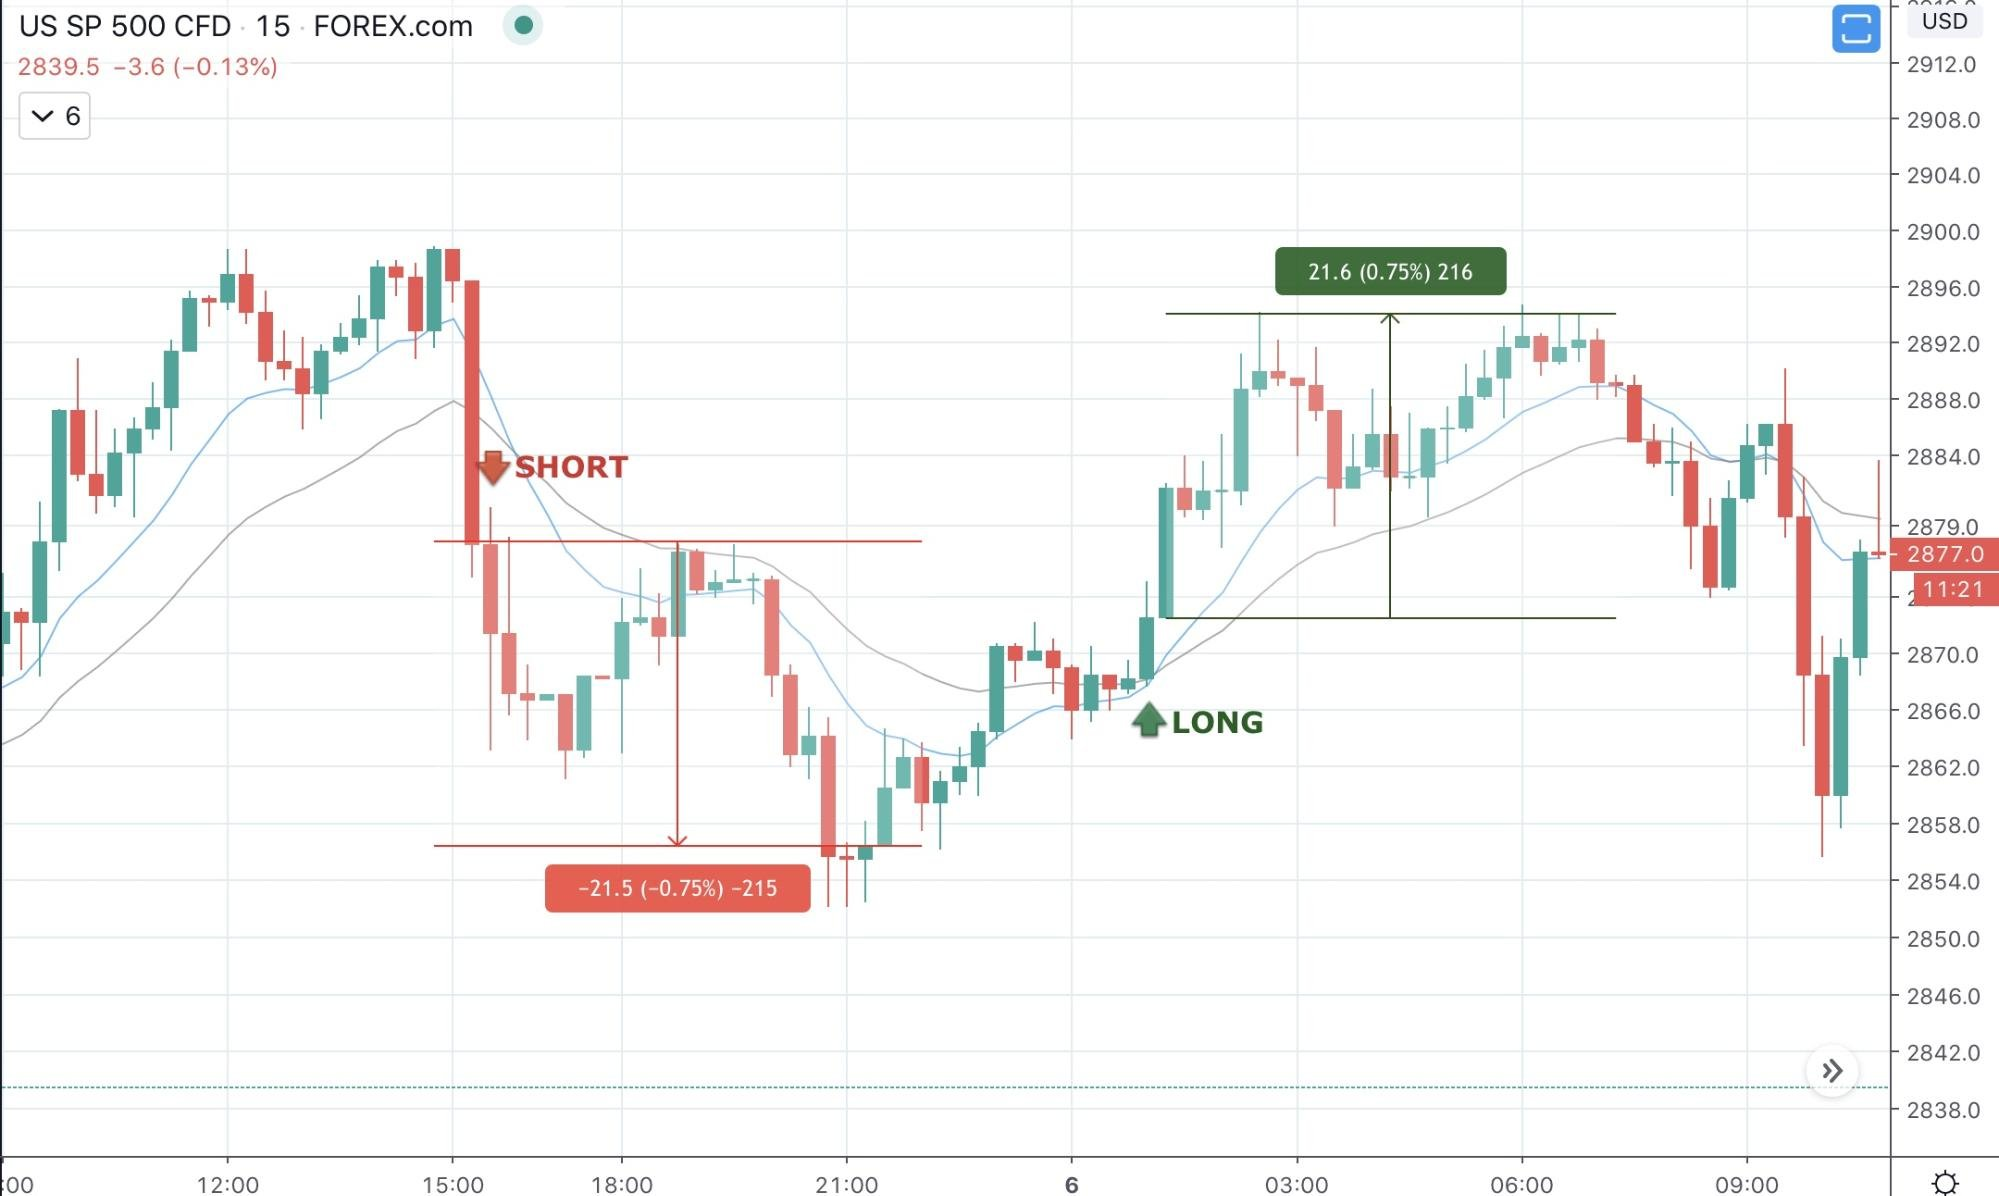 Best Intraday Trading Strategies 2020 - image4